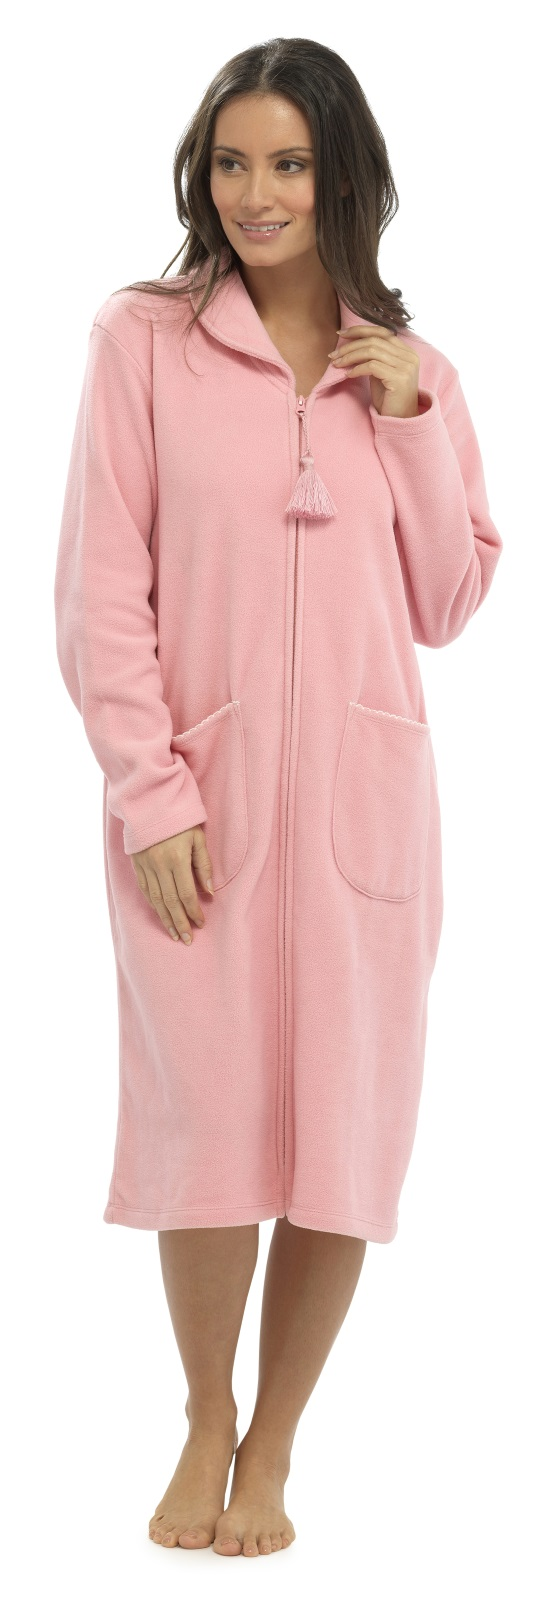 Womens Full Length Fleece Dressing Gown With Zip Long Robe Housecoat ...